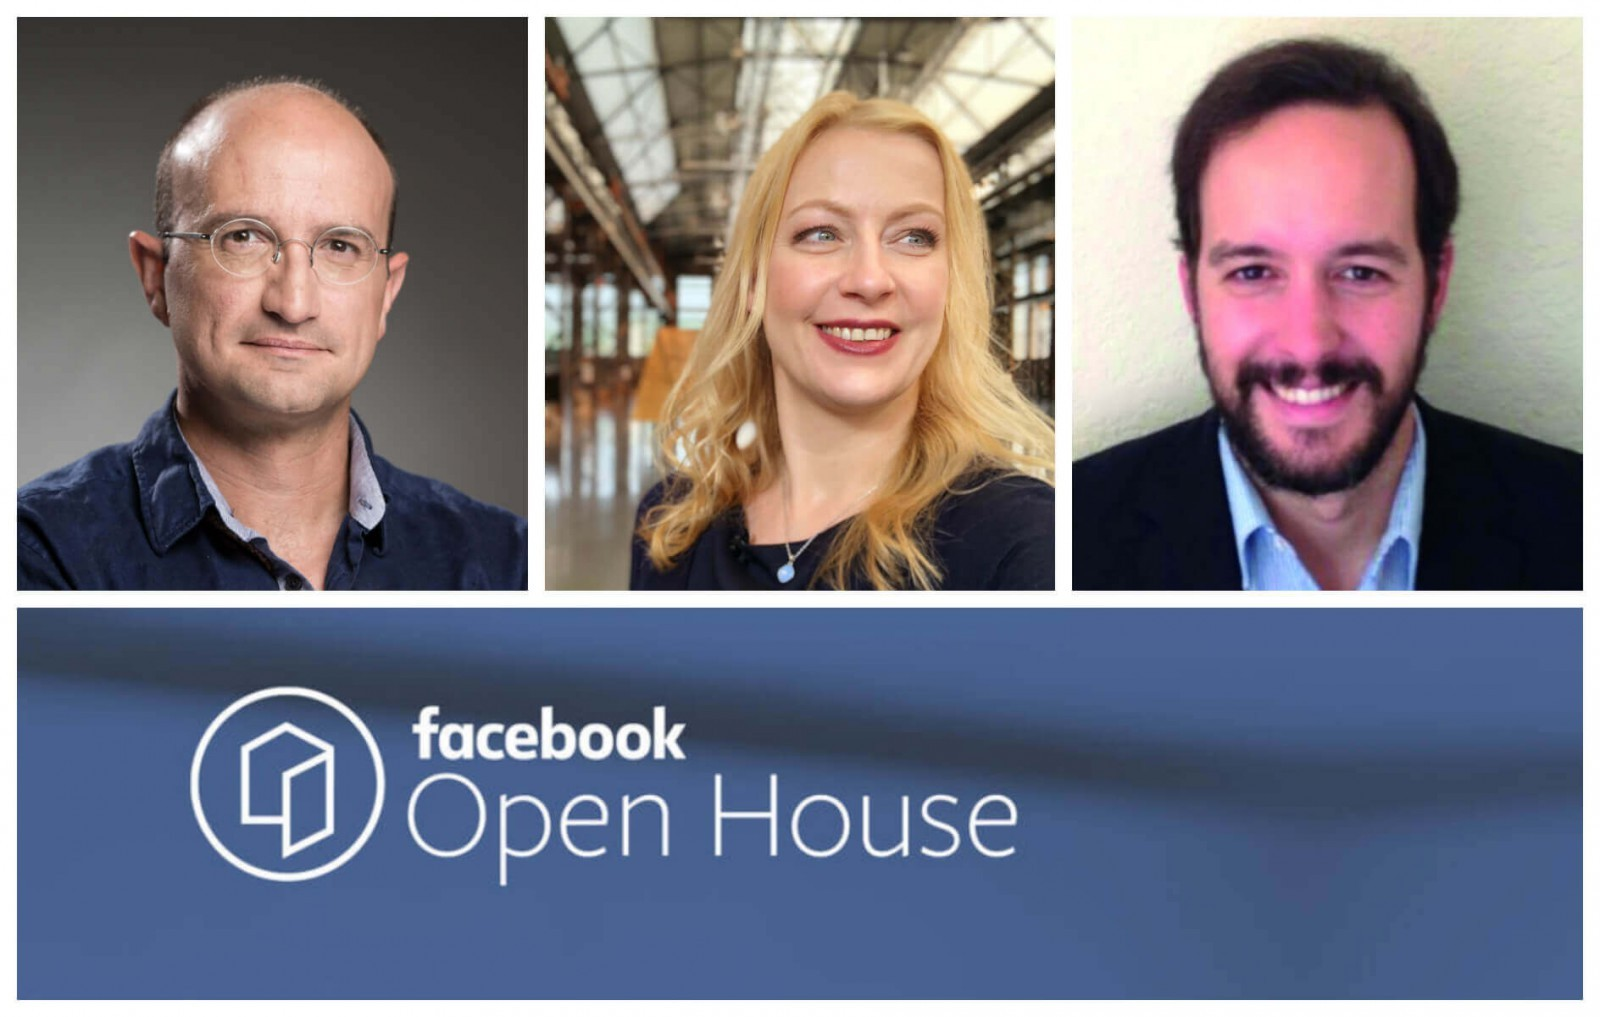 Moderator Carmen Hentschel ist hosting the AI panel for the Facebook Open House Event in Berlin